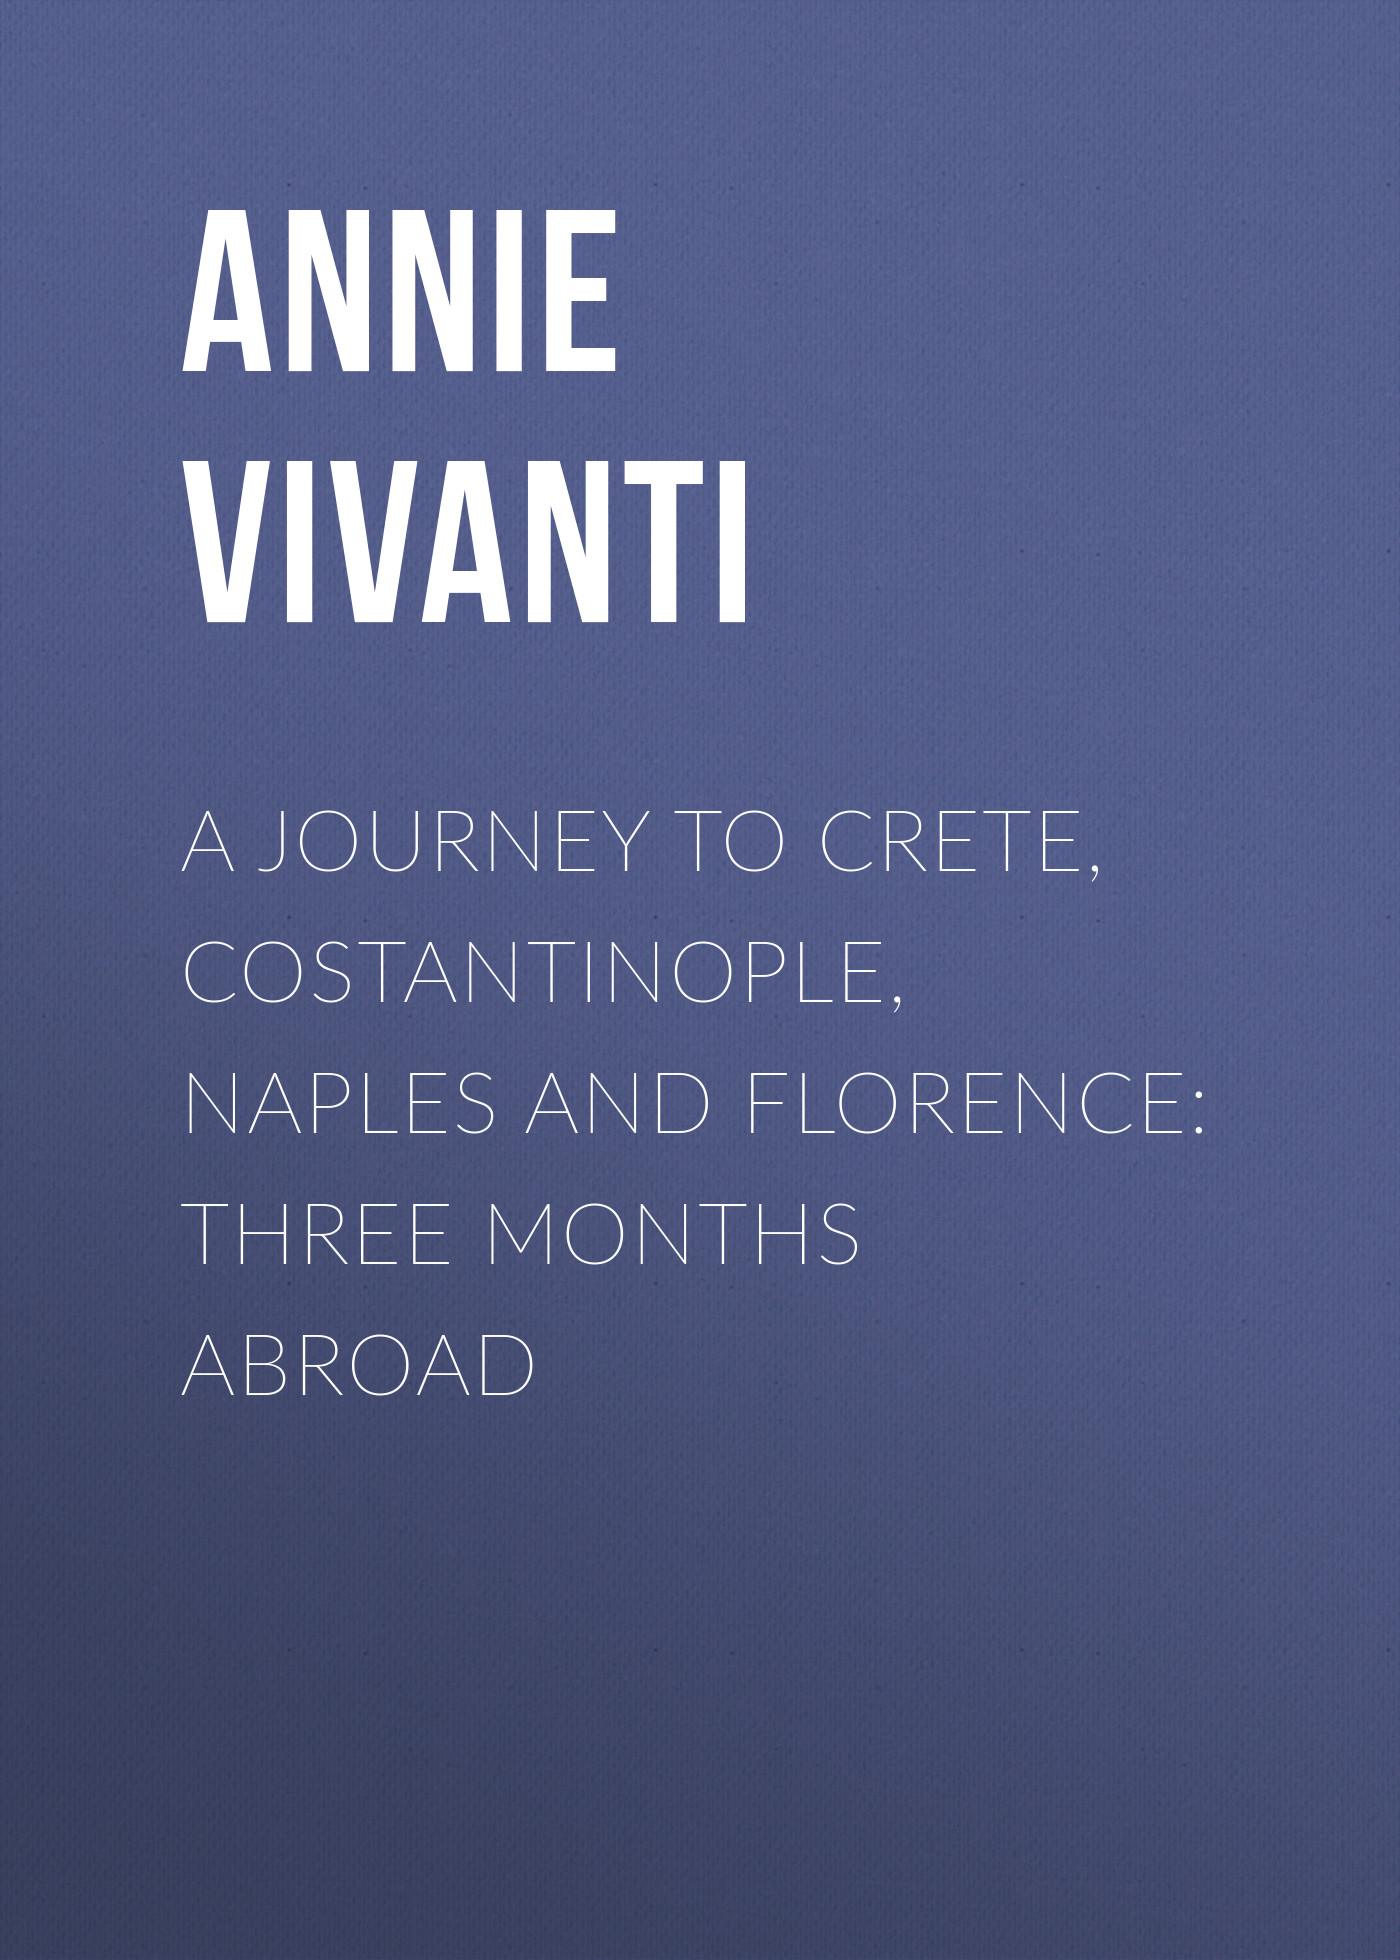 Annie Vivanti A Journey to Crete, Costantinople, Naples and Florence: Three Months Abroad caparezza naples